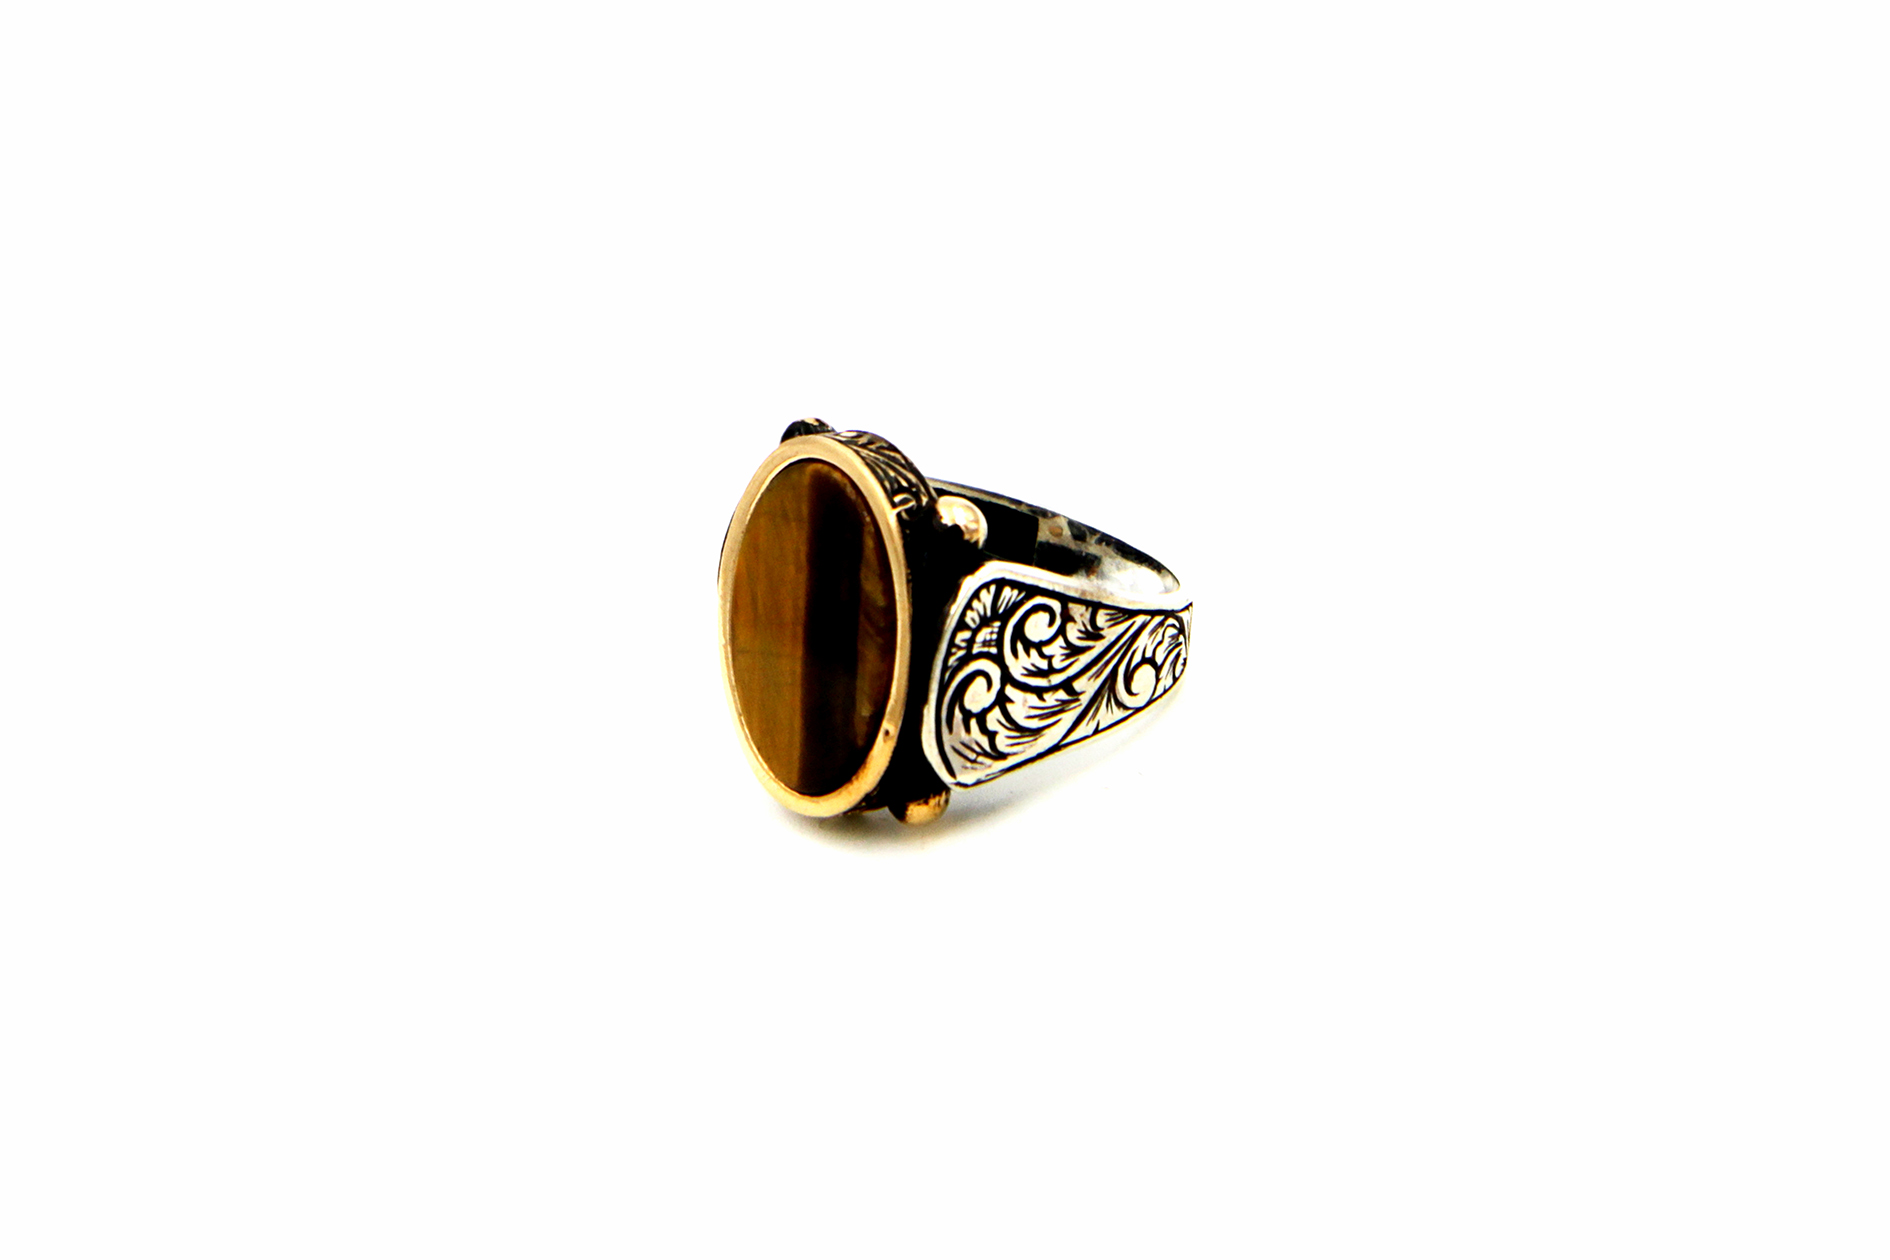 Hand crafted men s ring designed made in turkey for Handcrafted or hand crafted